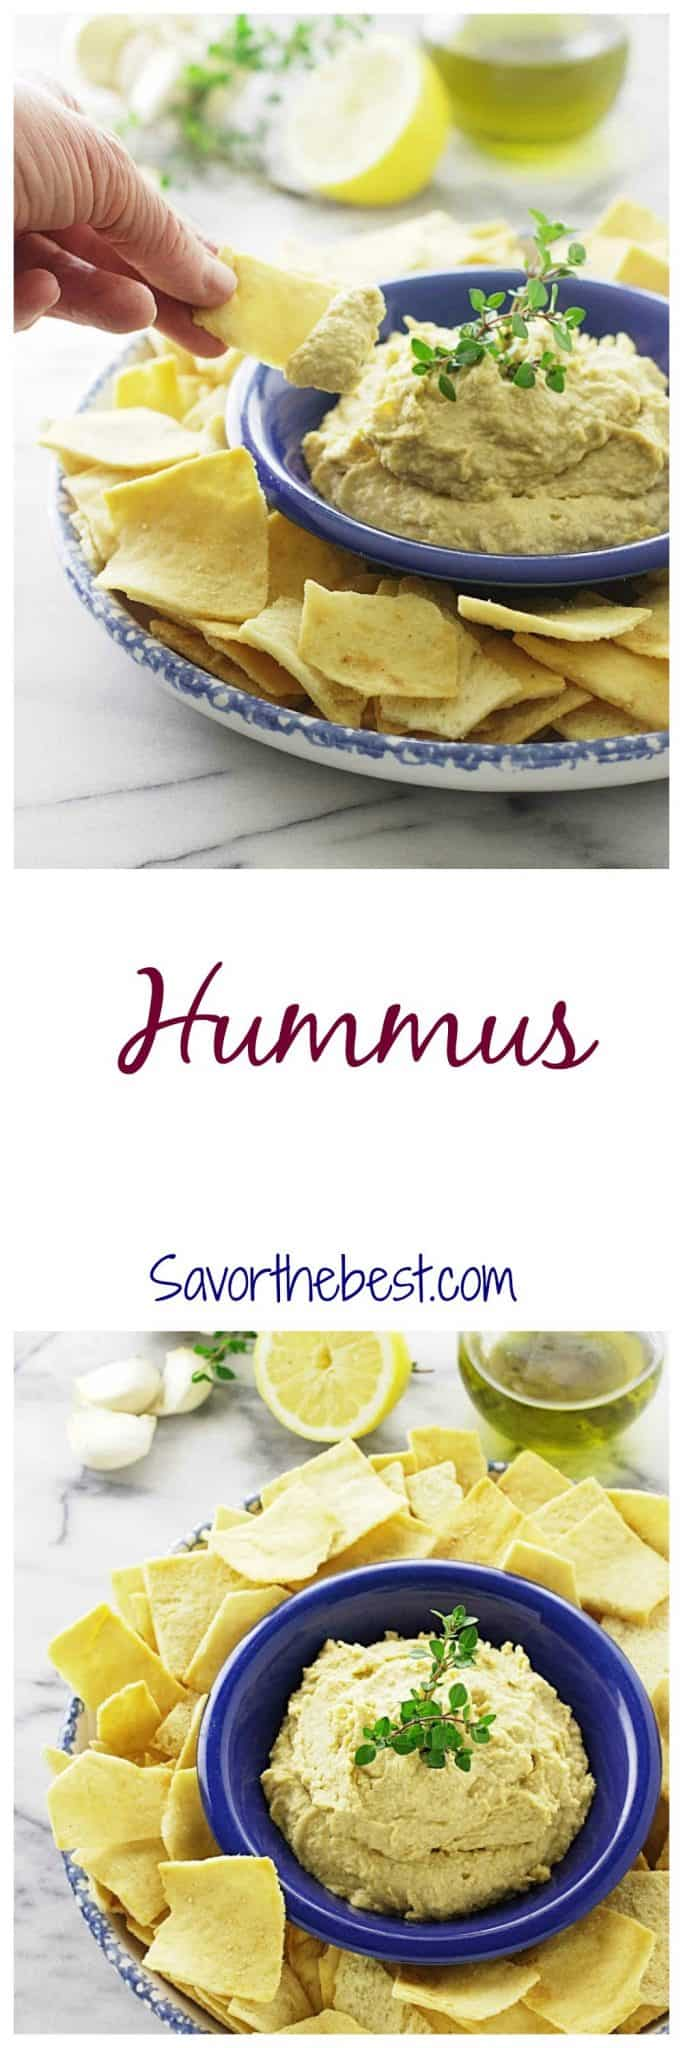 A creamy, traditional style hummus dip made with garbanzo beans. Serve with raw vegetables or pita bread.